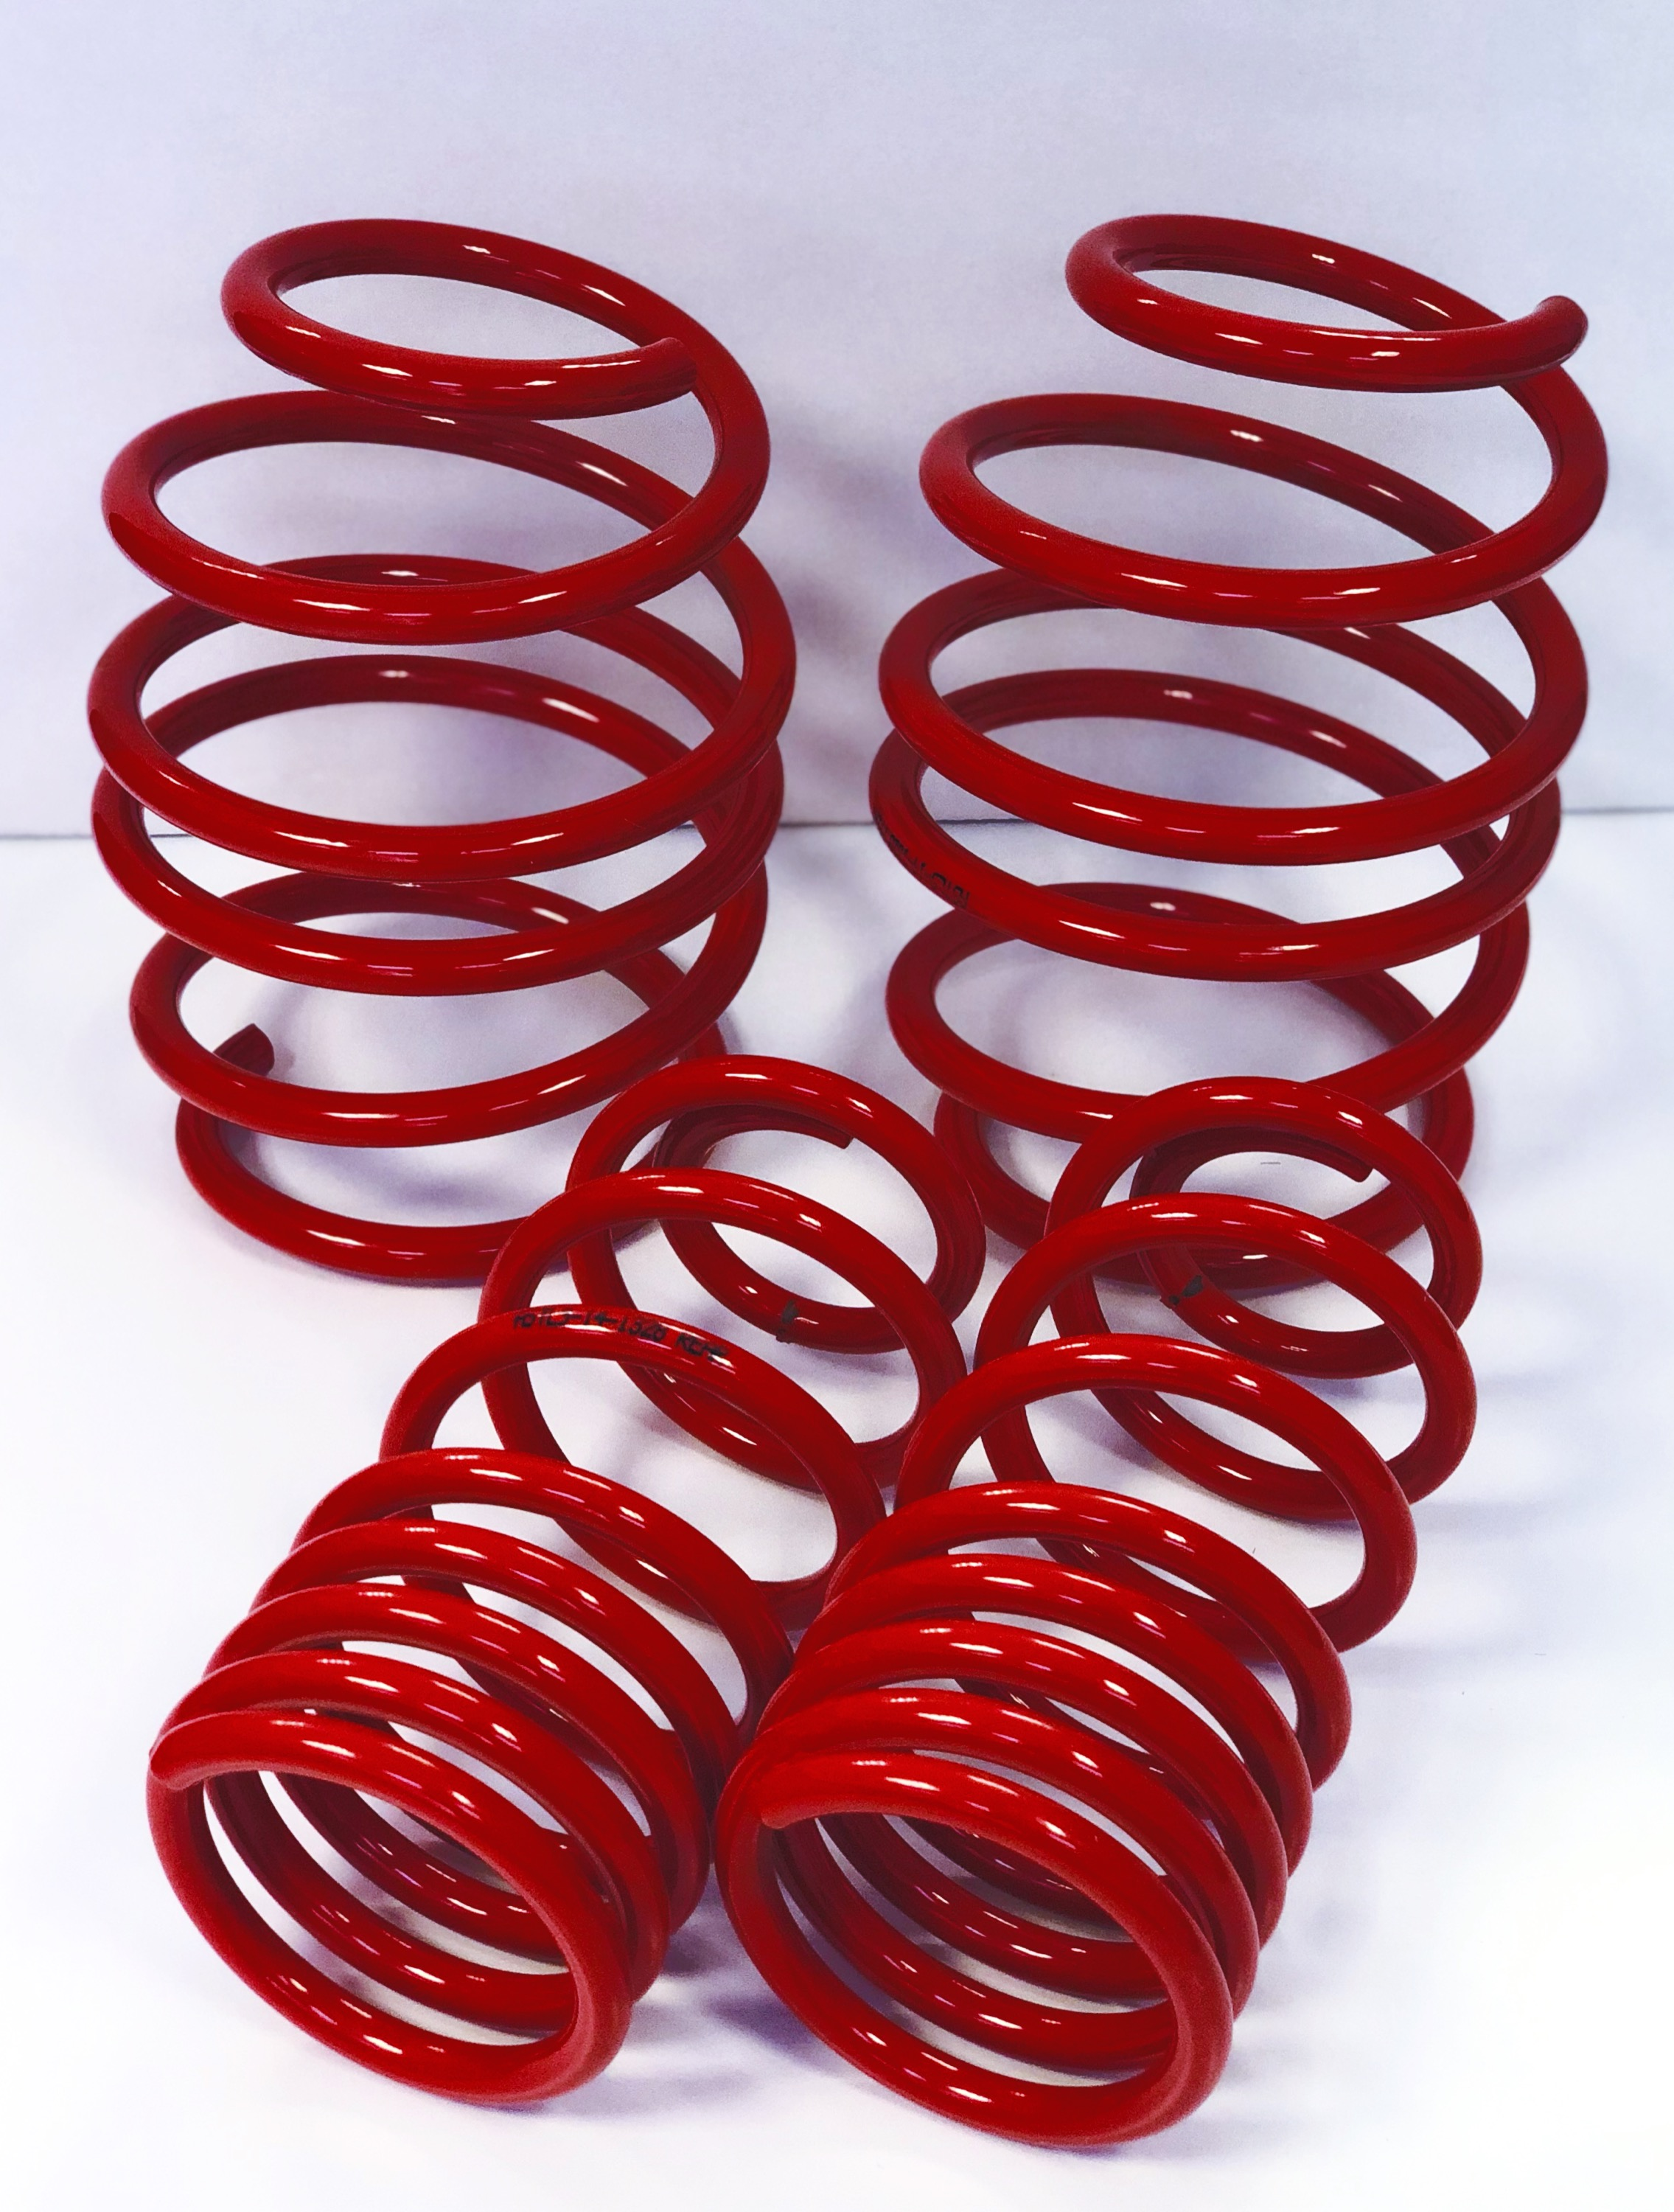 Renault MEGANE AST Suspension Lowering Springs 25MM